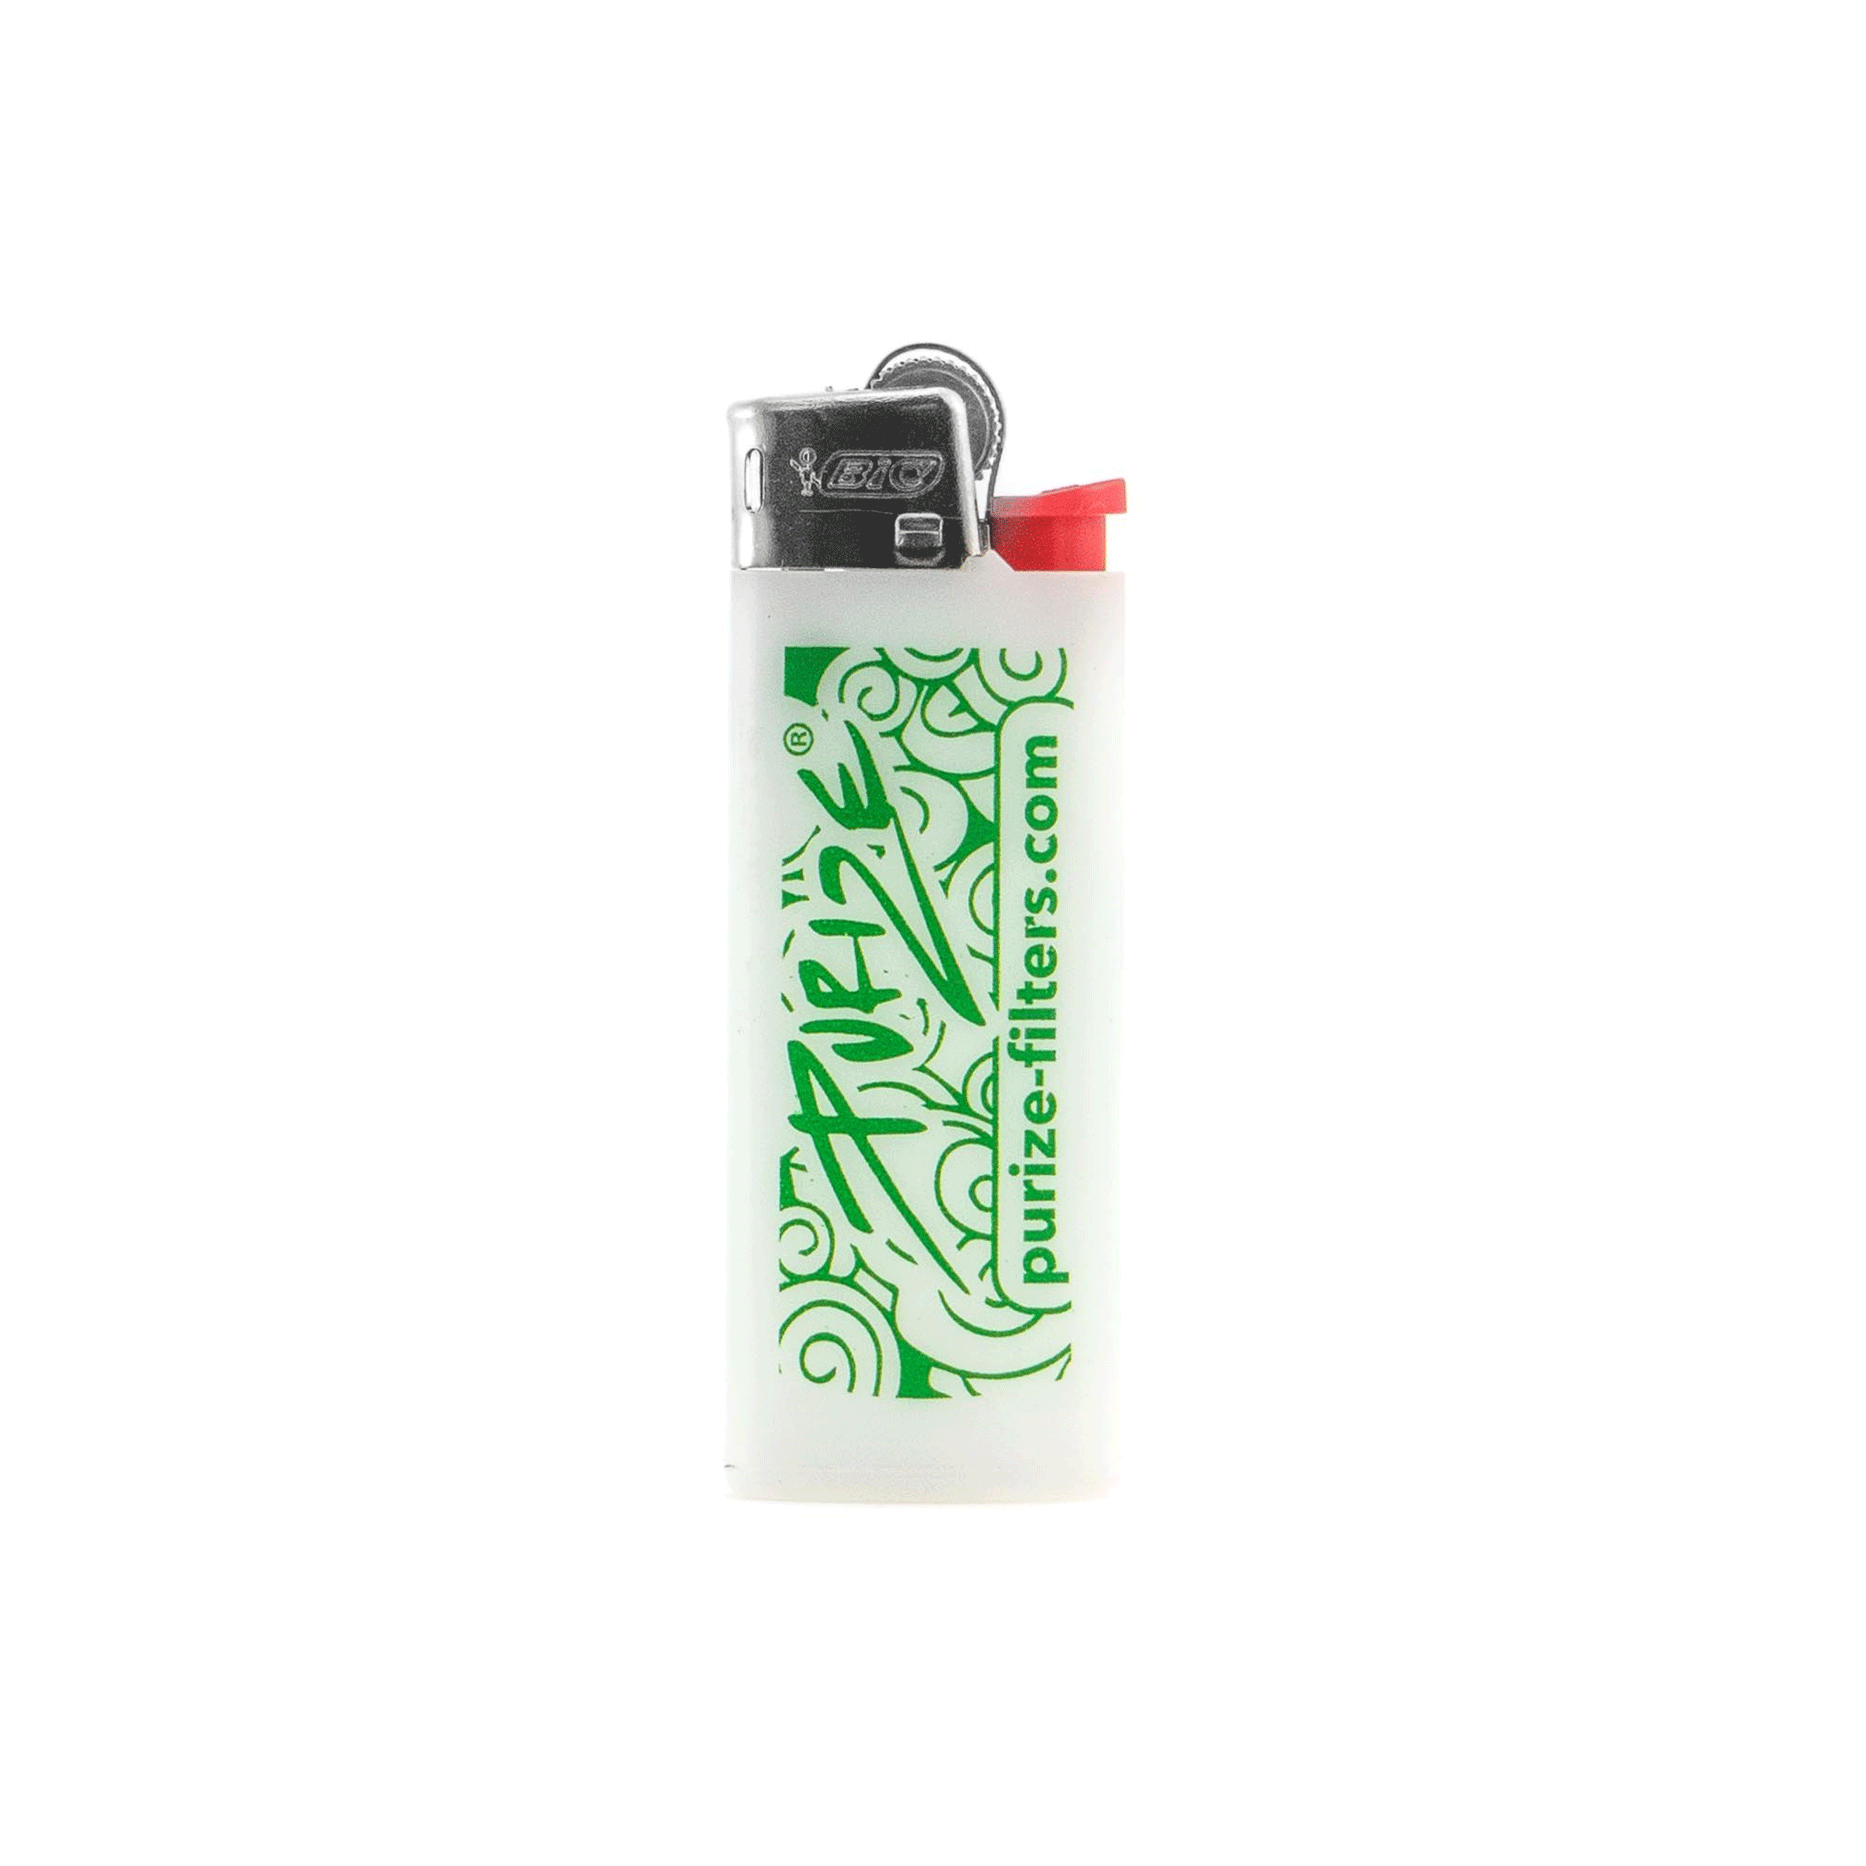 PURIZE® x BIC I miniBIC I Doodle-Design